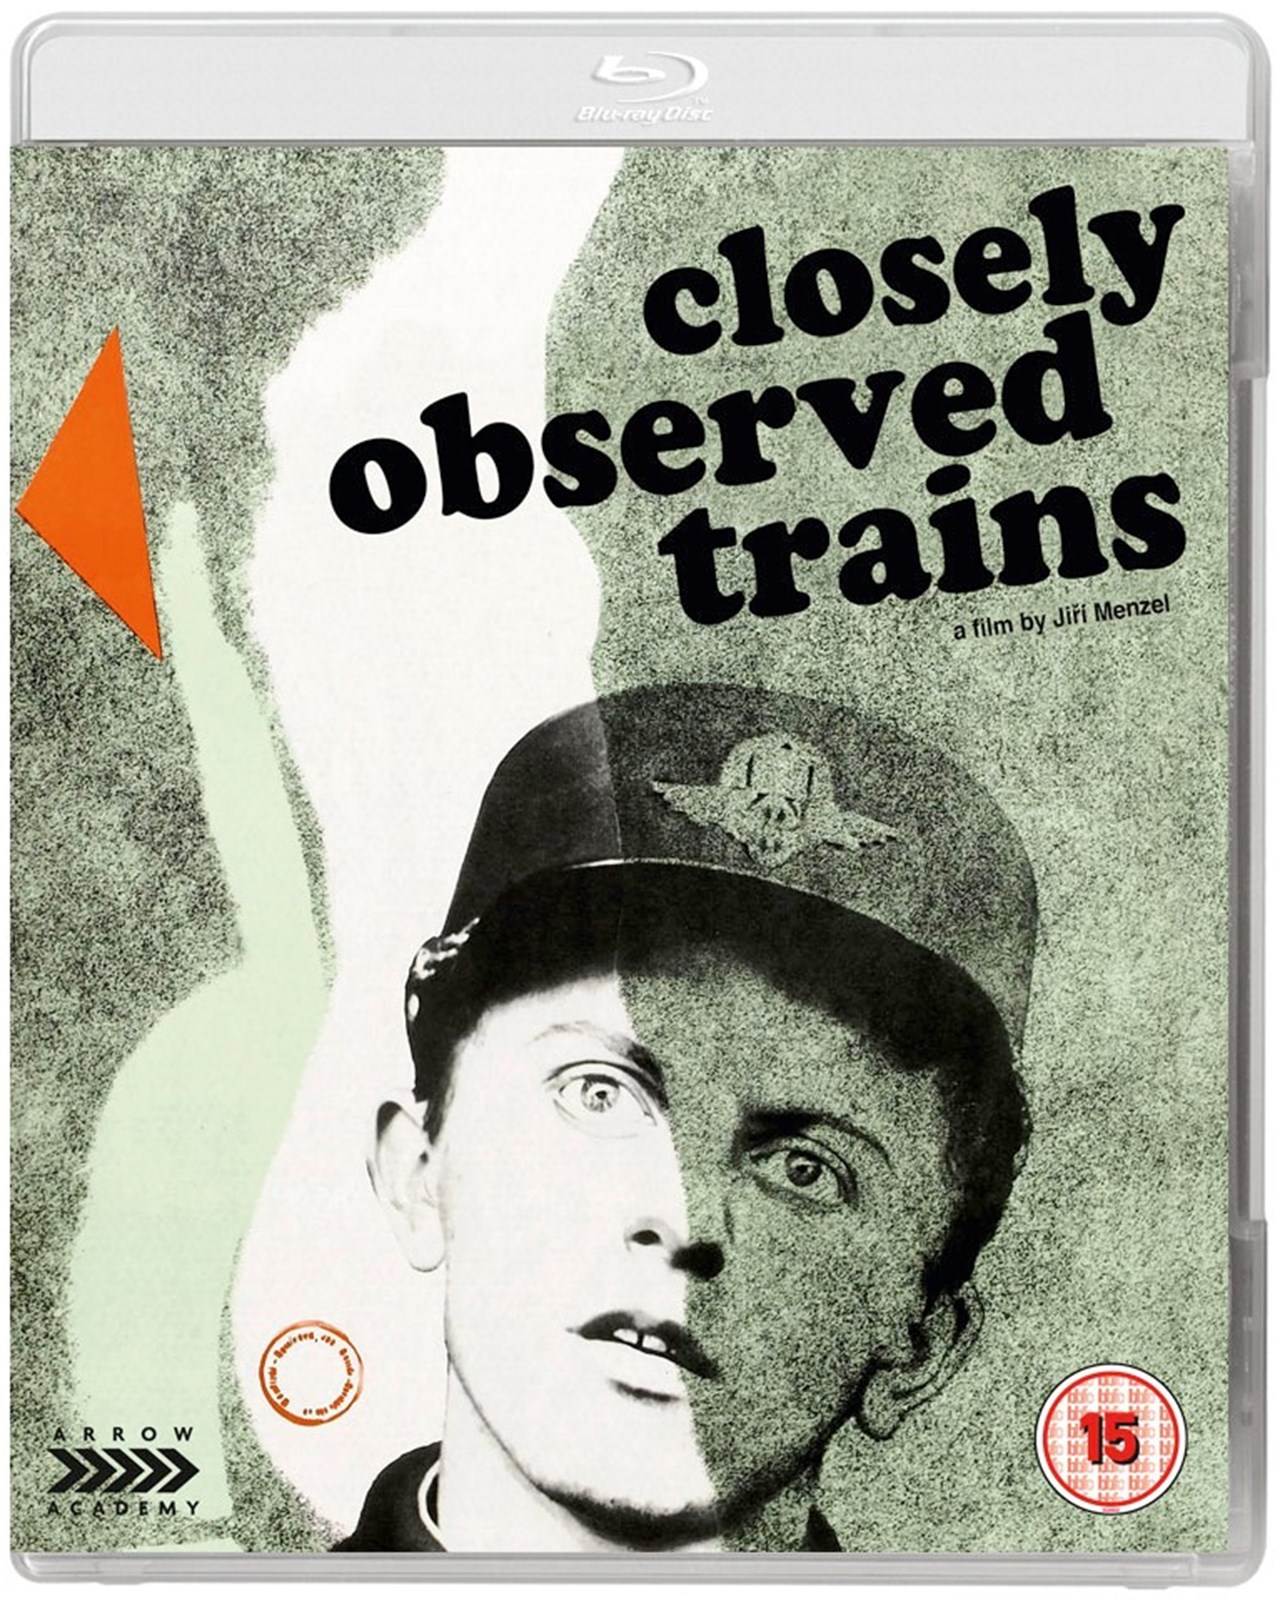 Closely Observed Trains - 1